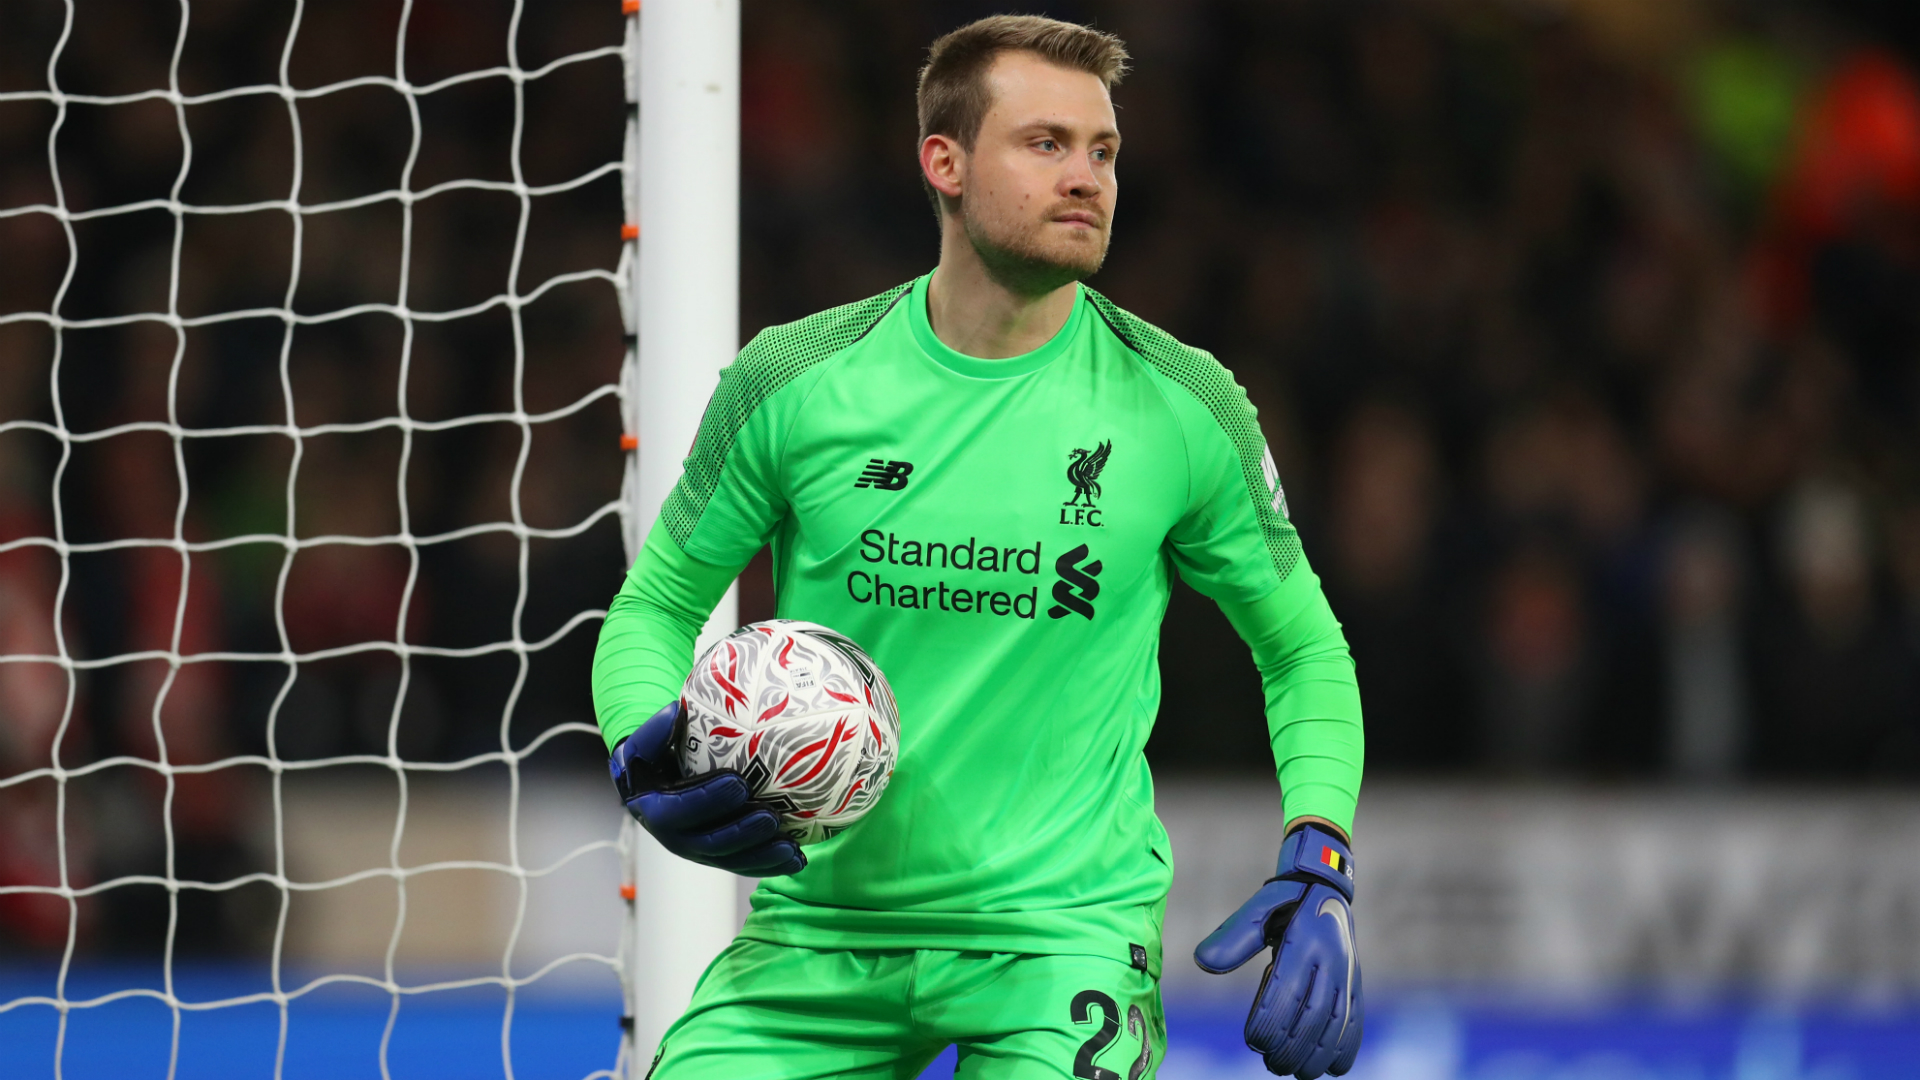 Klopp expects Mignolet to stay at Liverpool